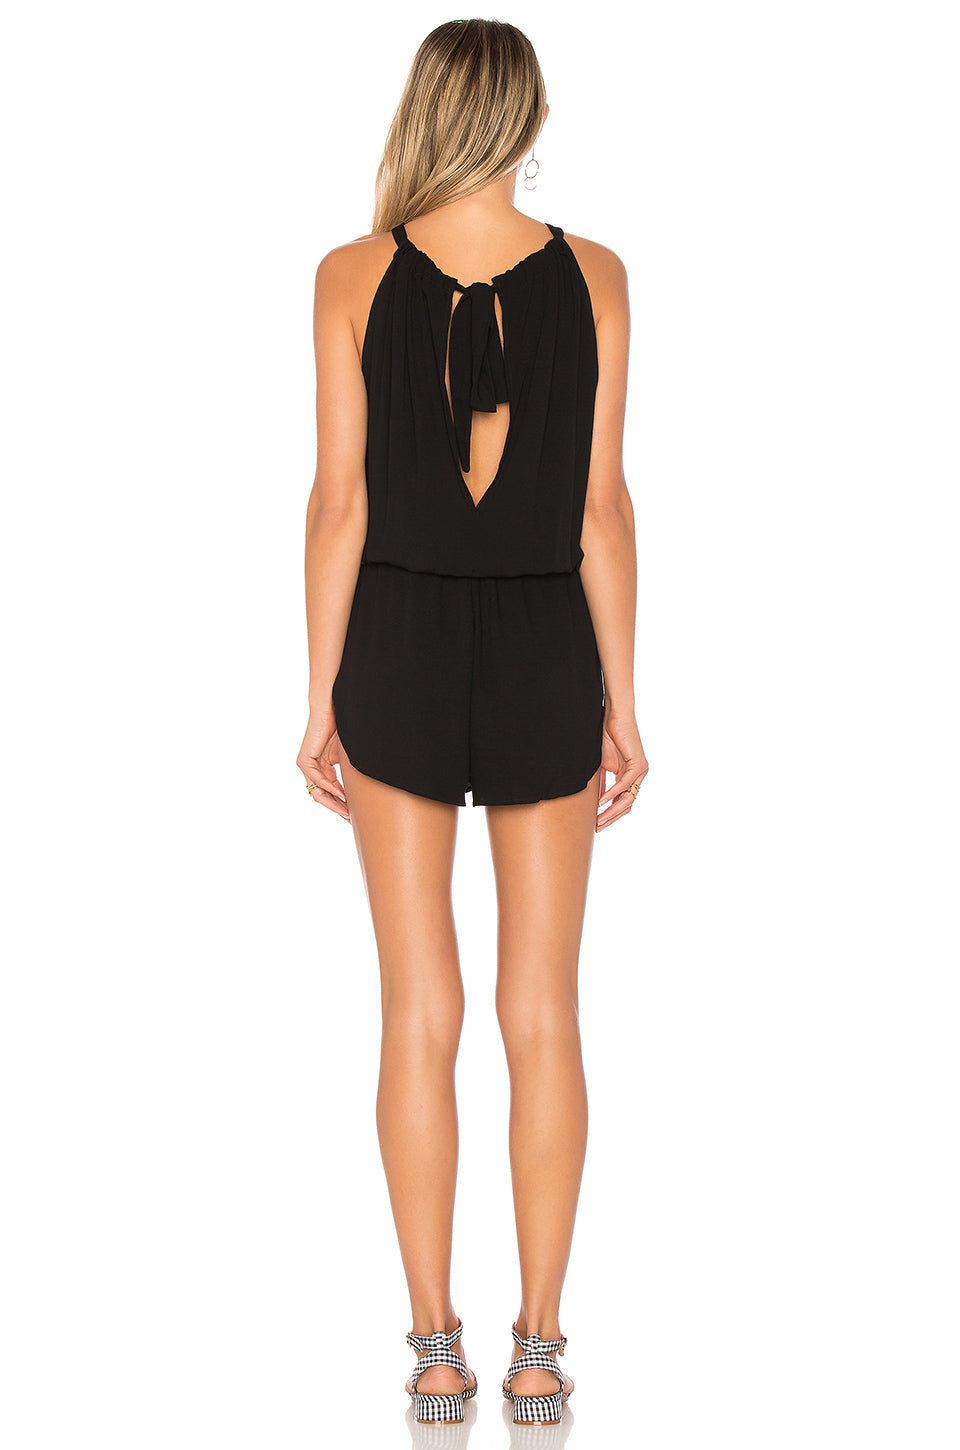 Indah Sherry Romper Black